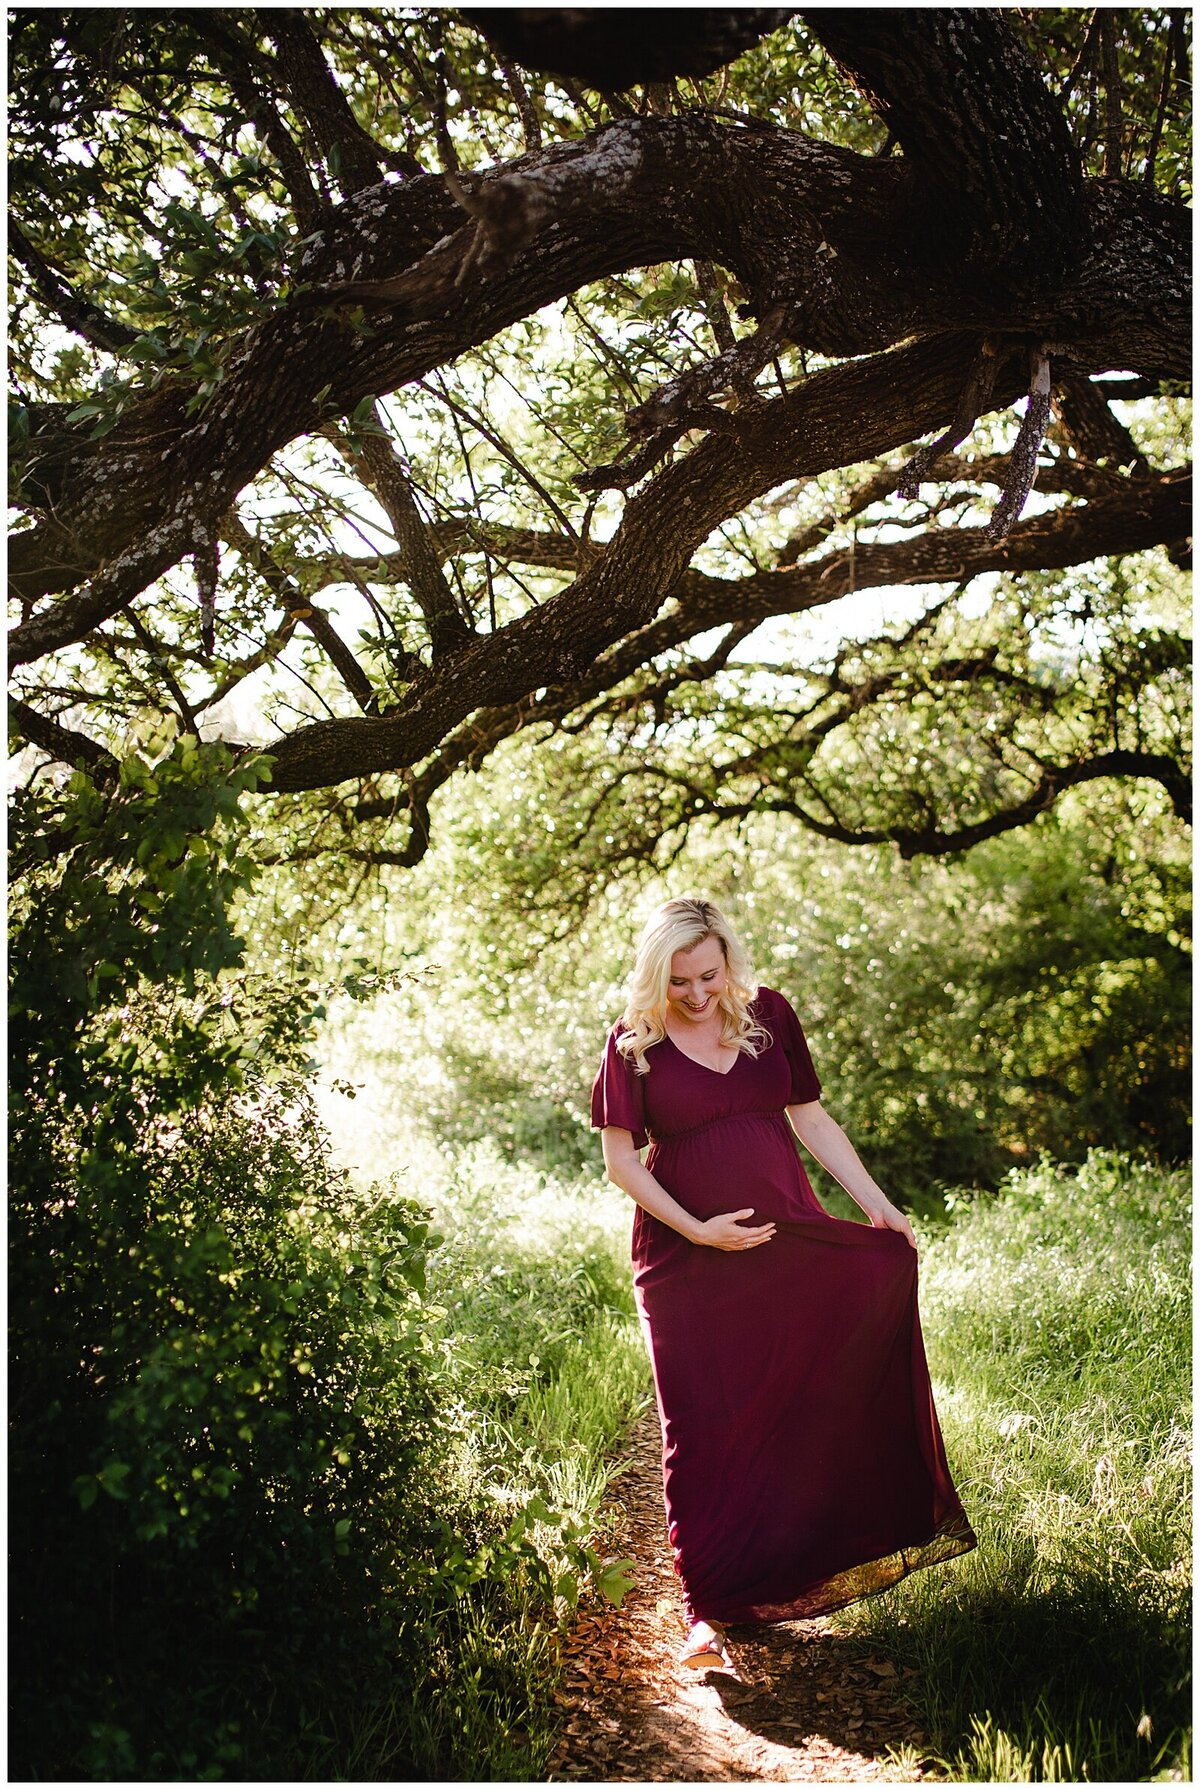 Outdoor maternity motherhood photography